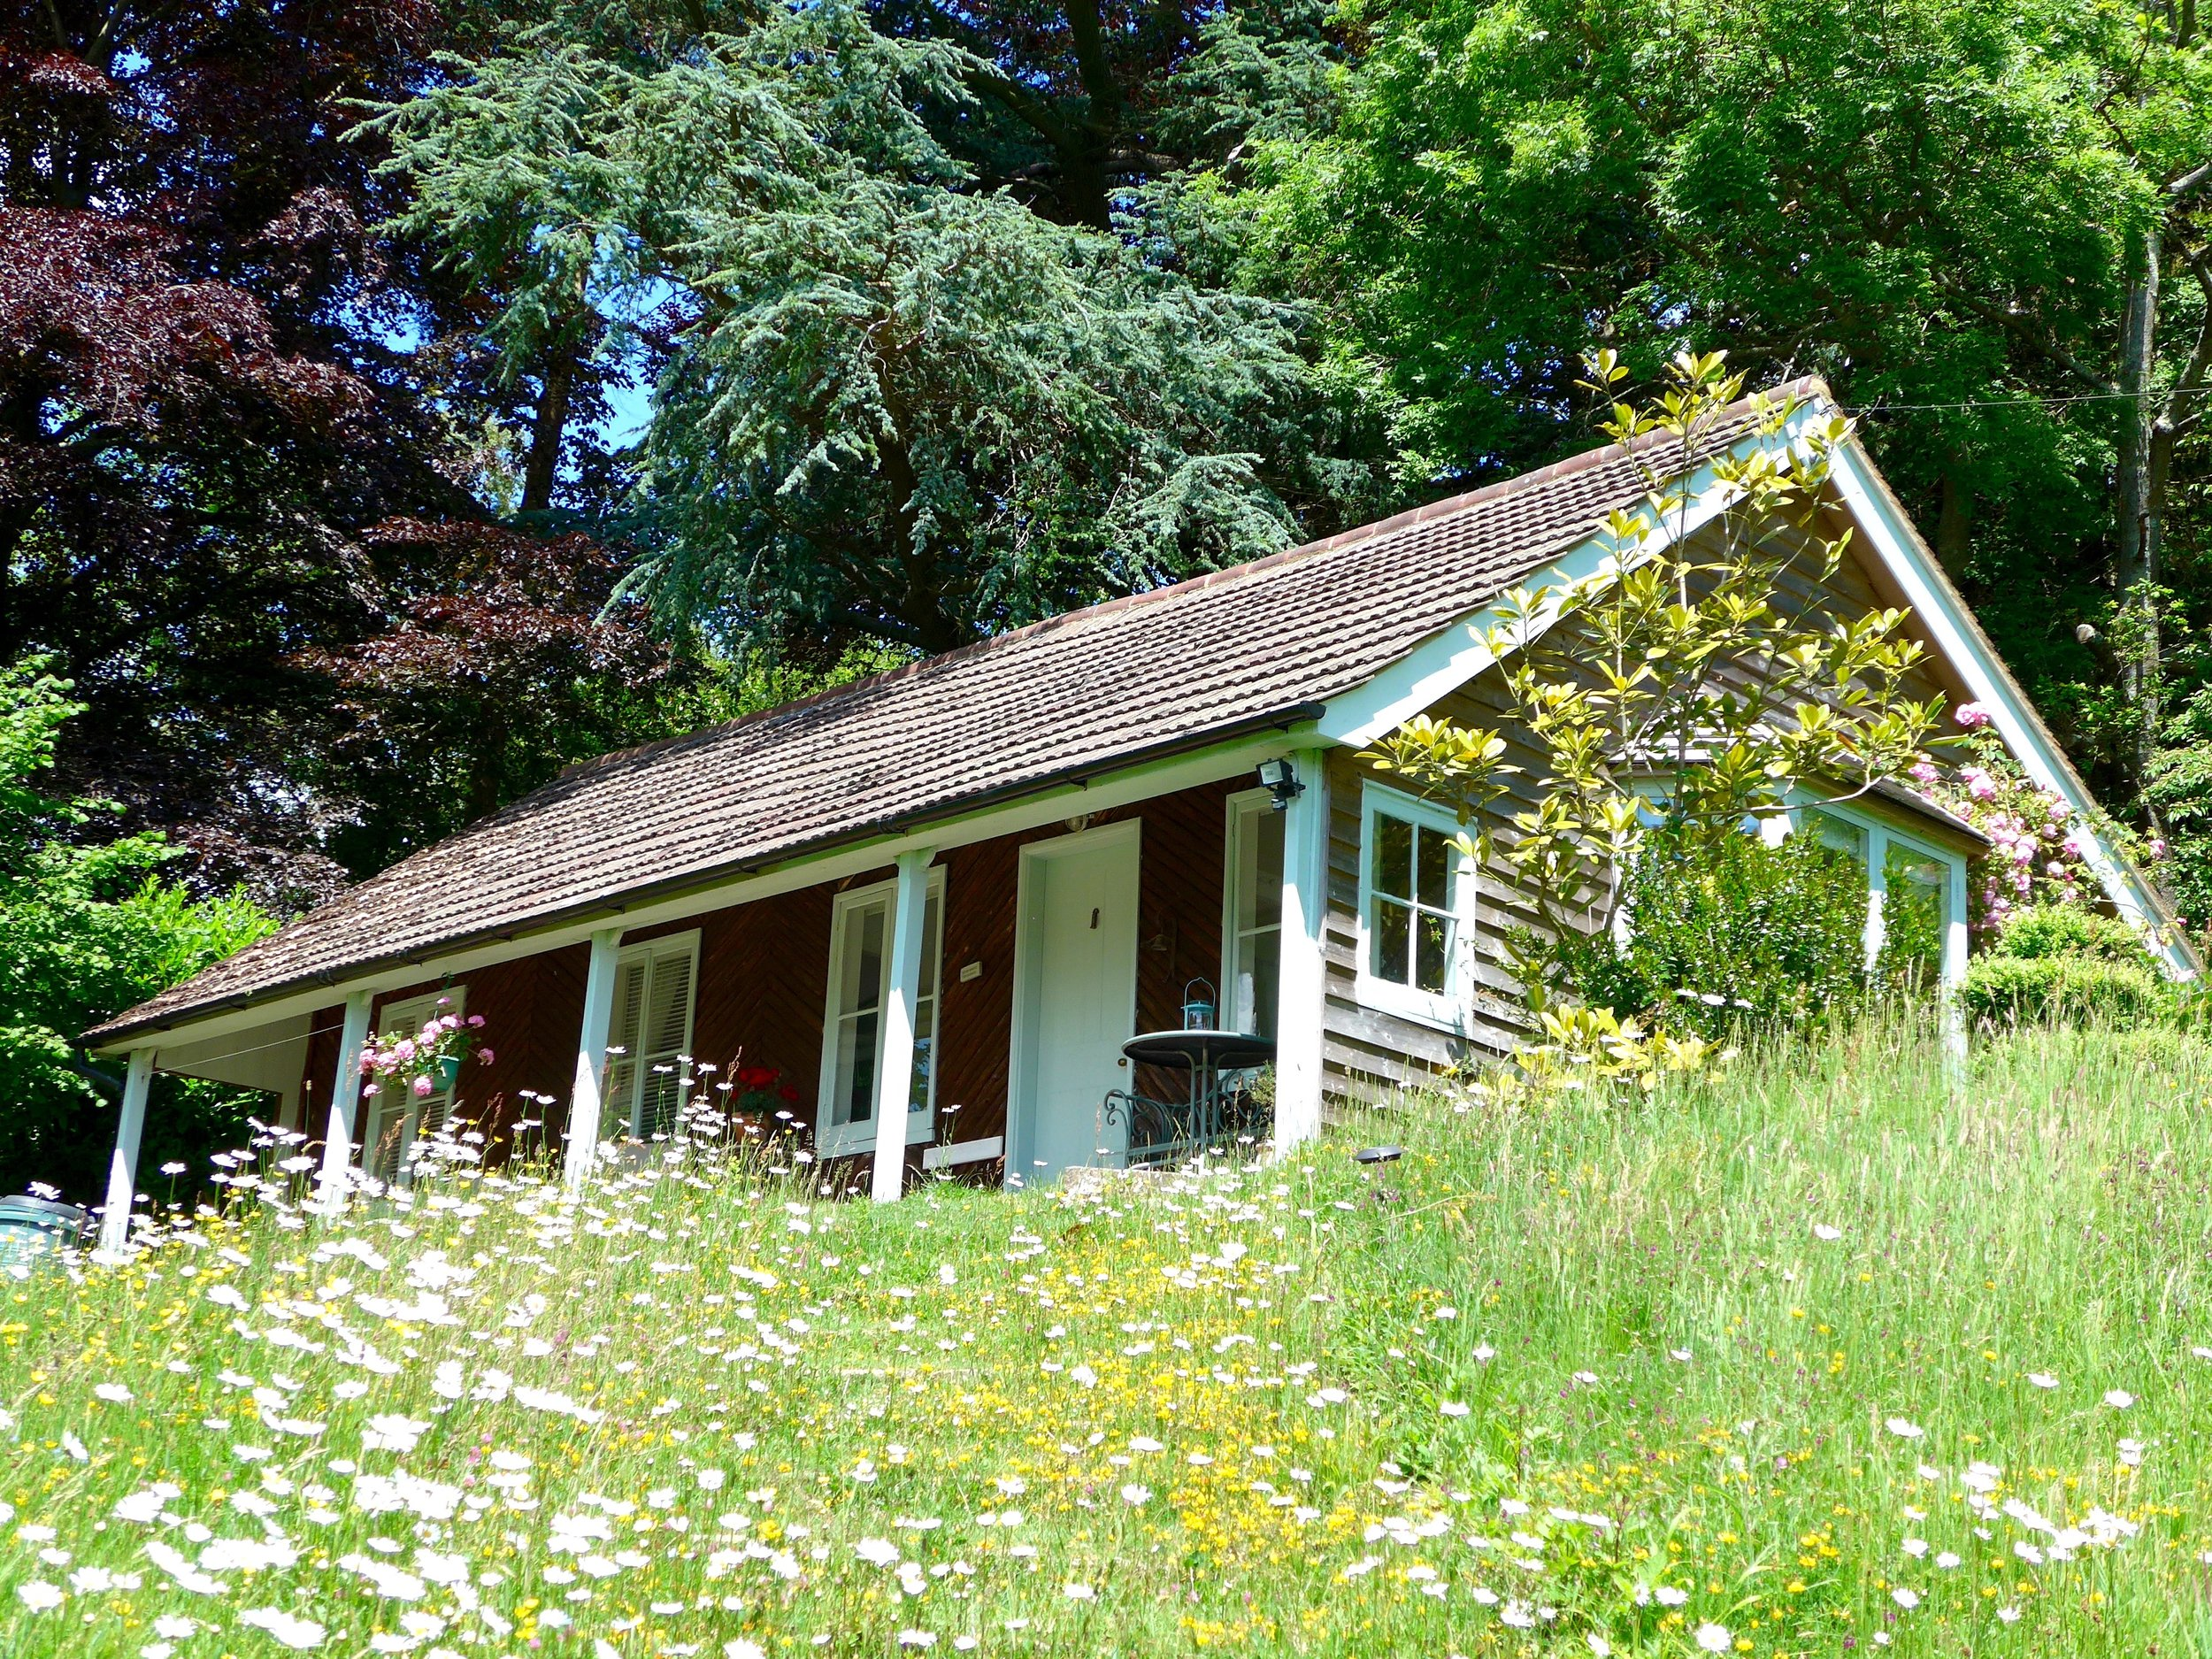 The Cottage in its summer meadow